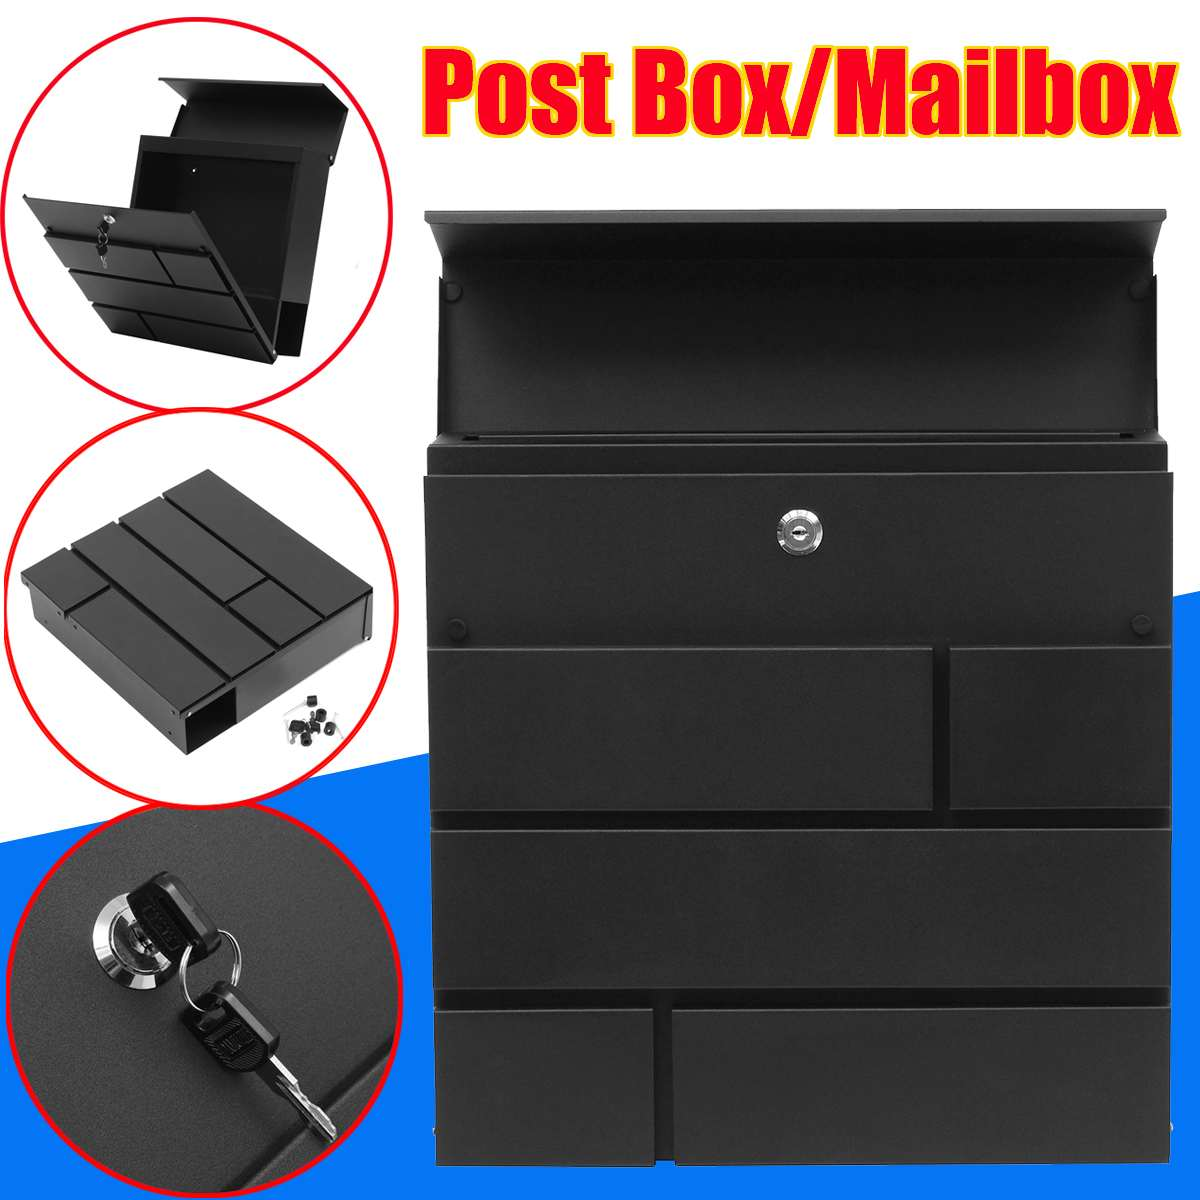 Newspaper Letter Wall Mounted Paint Mailbox Stainless Steel Metal Mail Box Case Post Box Lockable Box